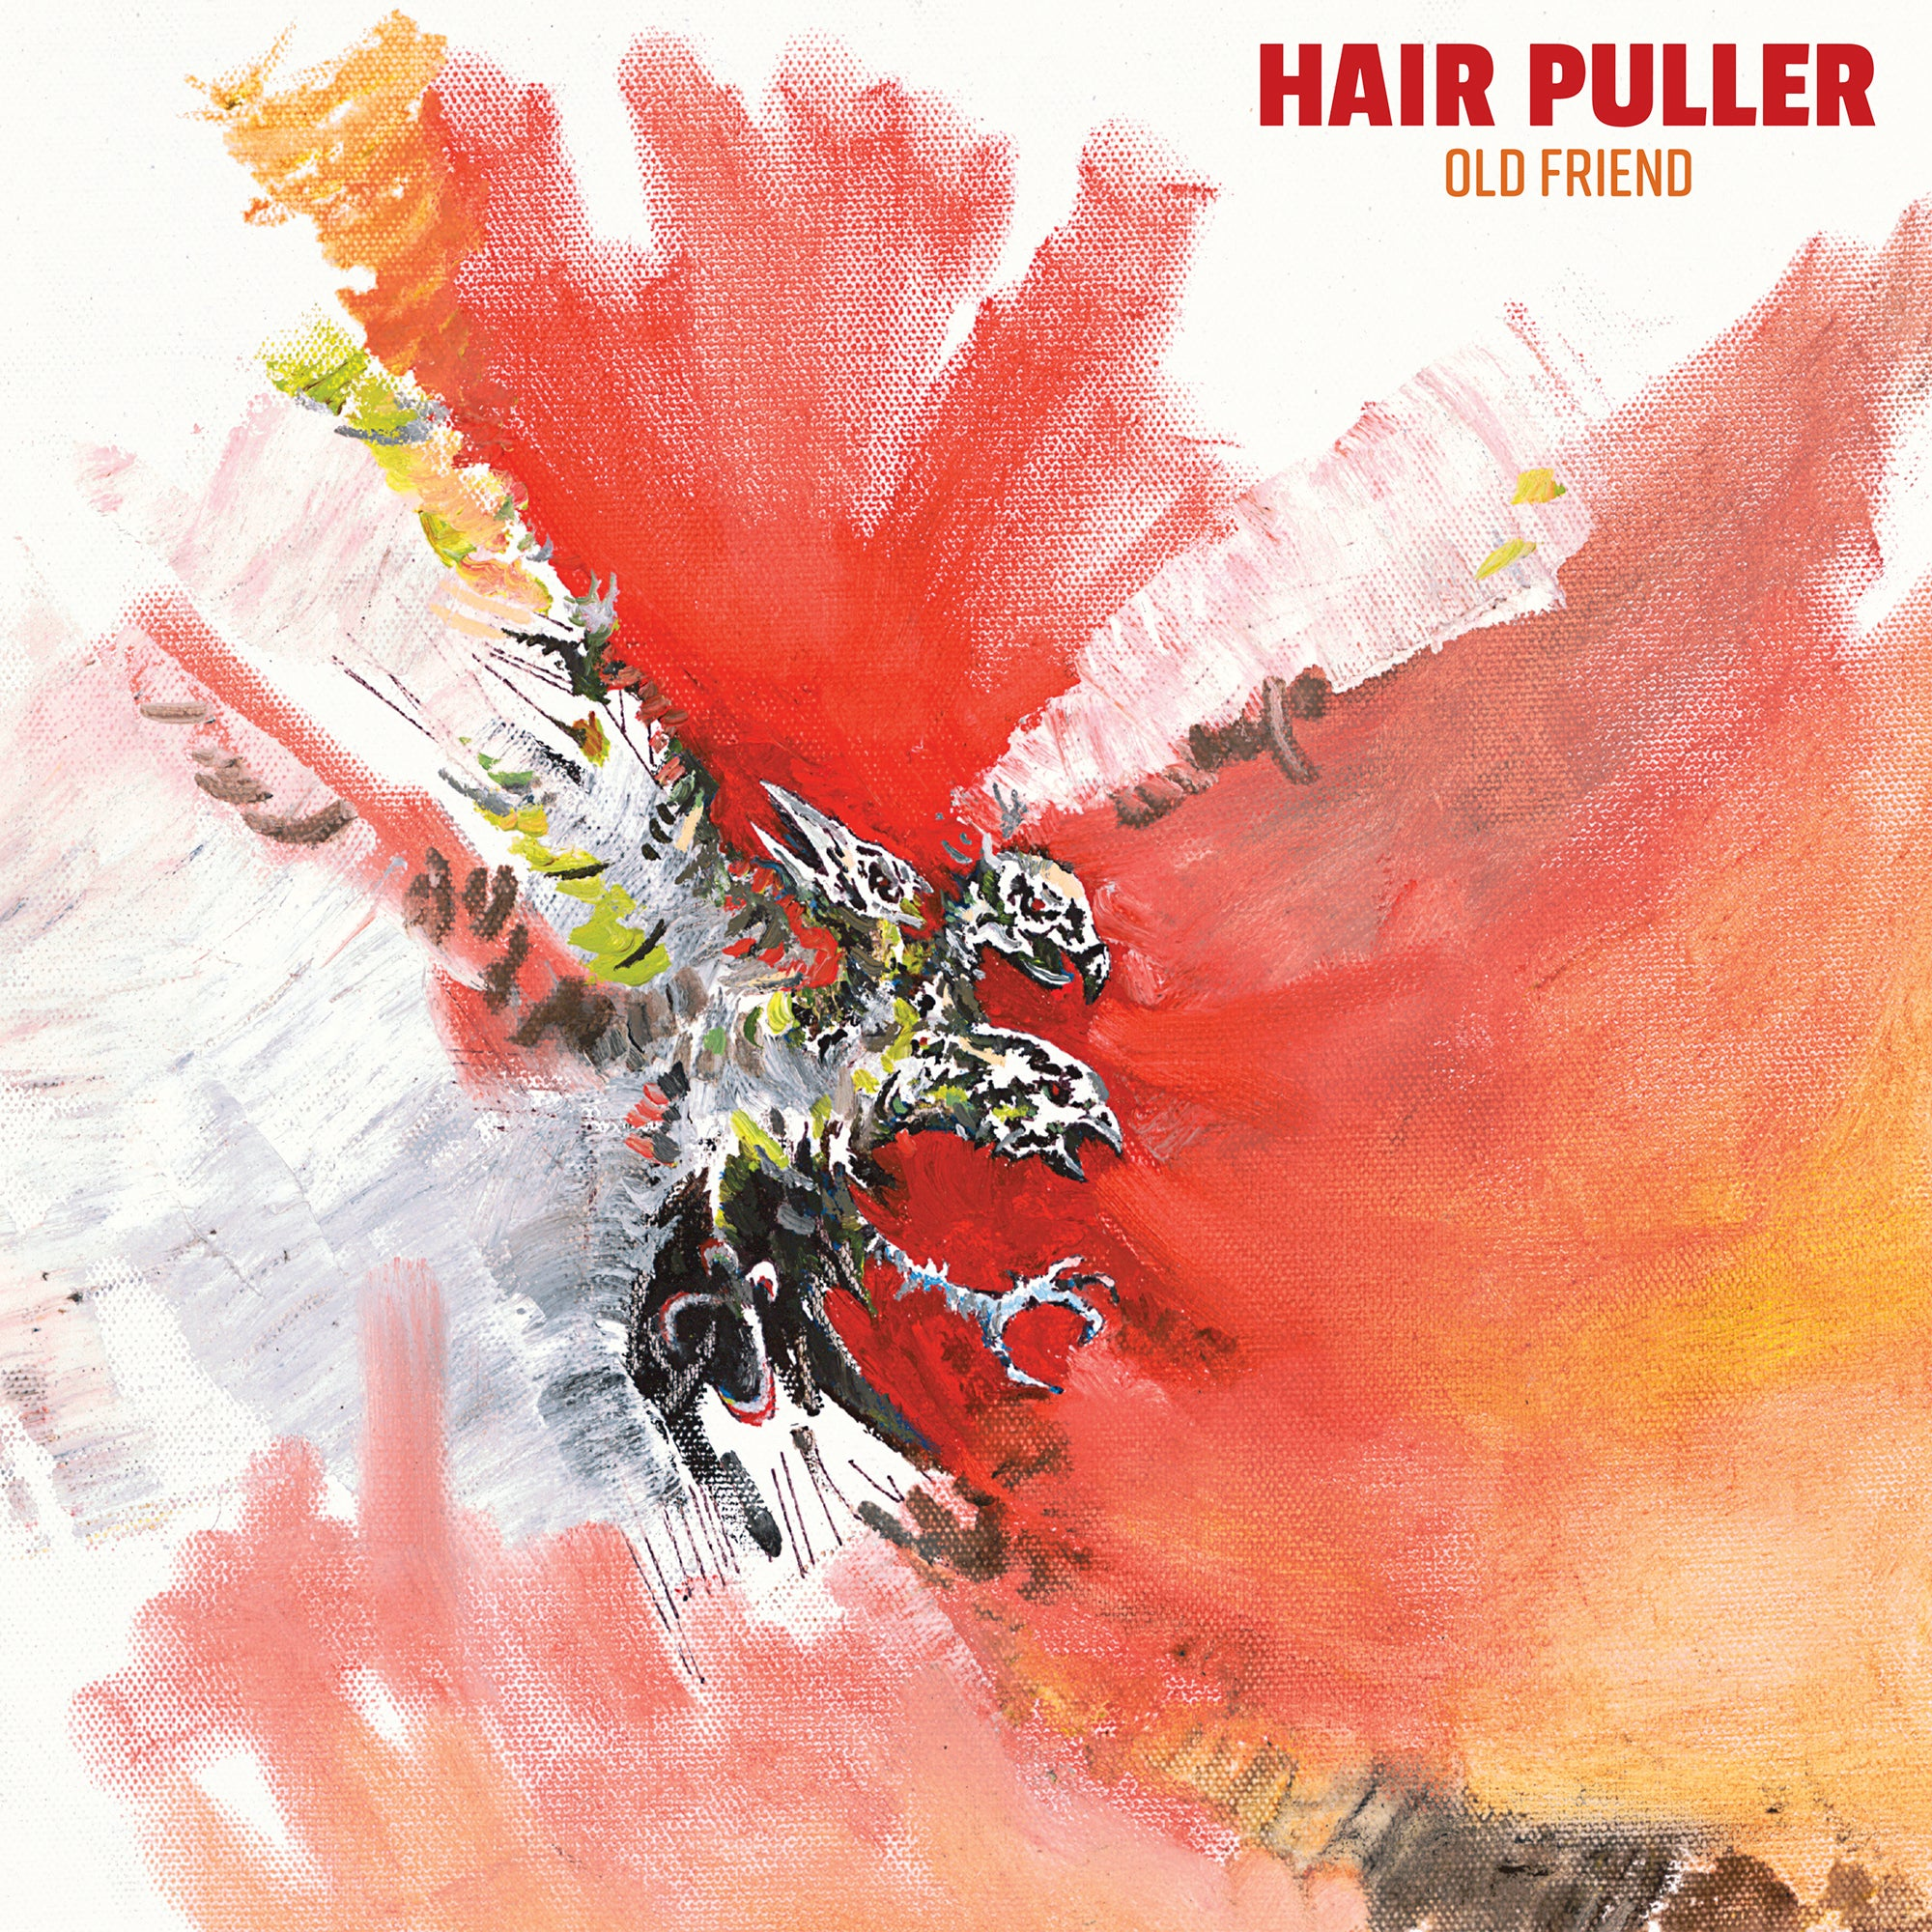 Hair Puller - Old Friend - New LP